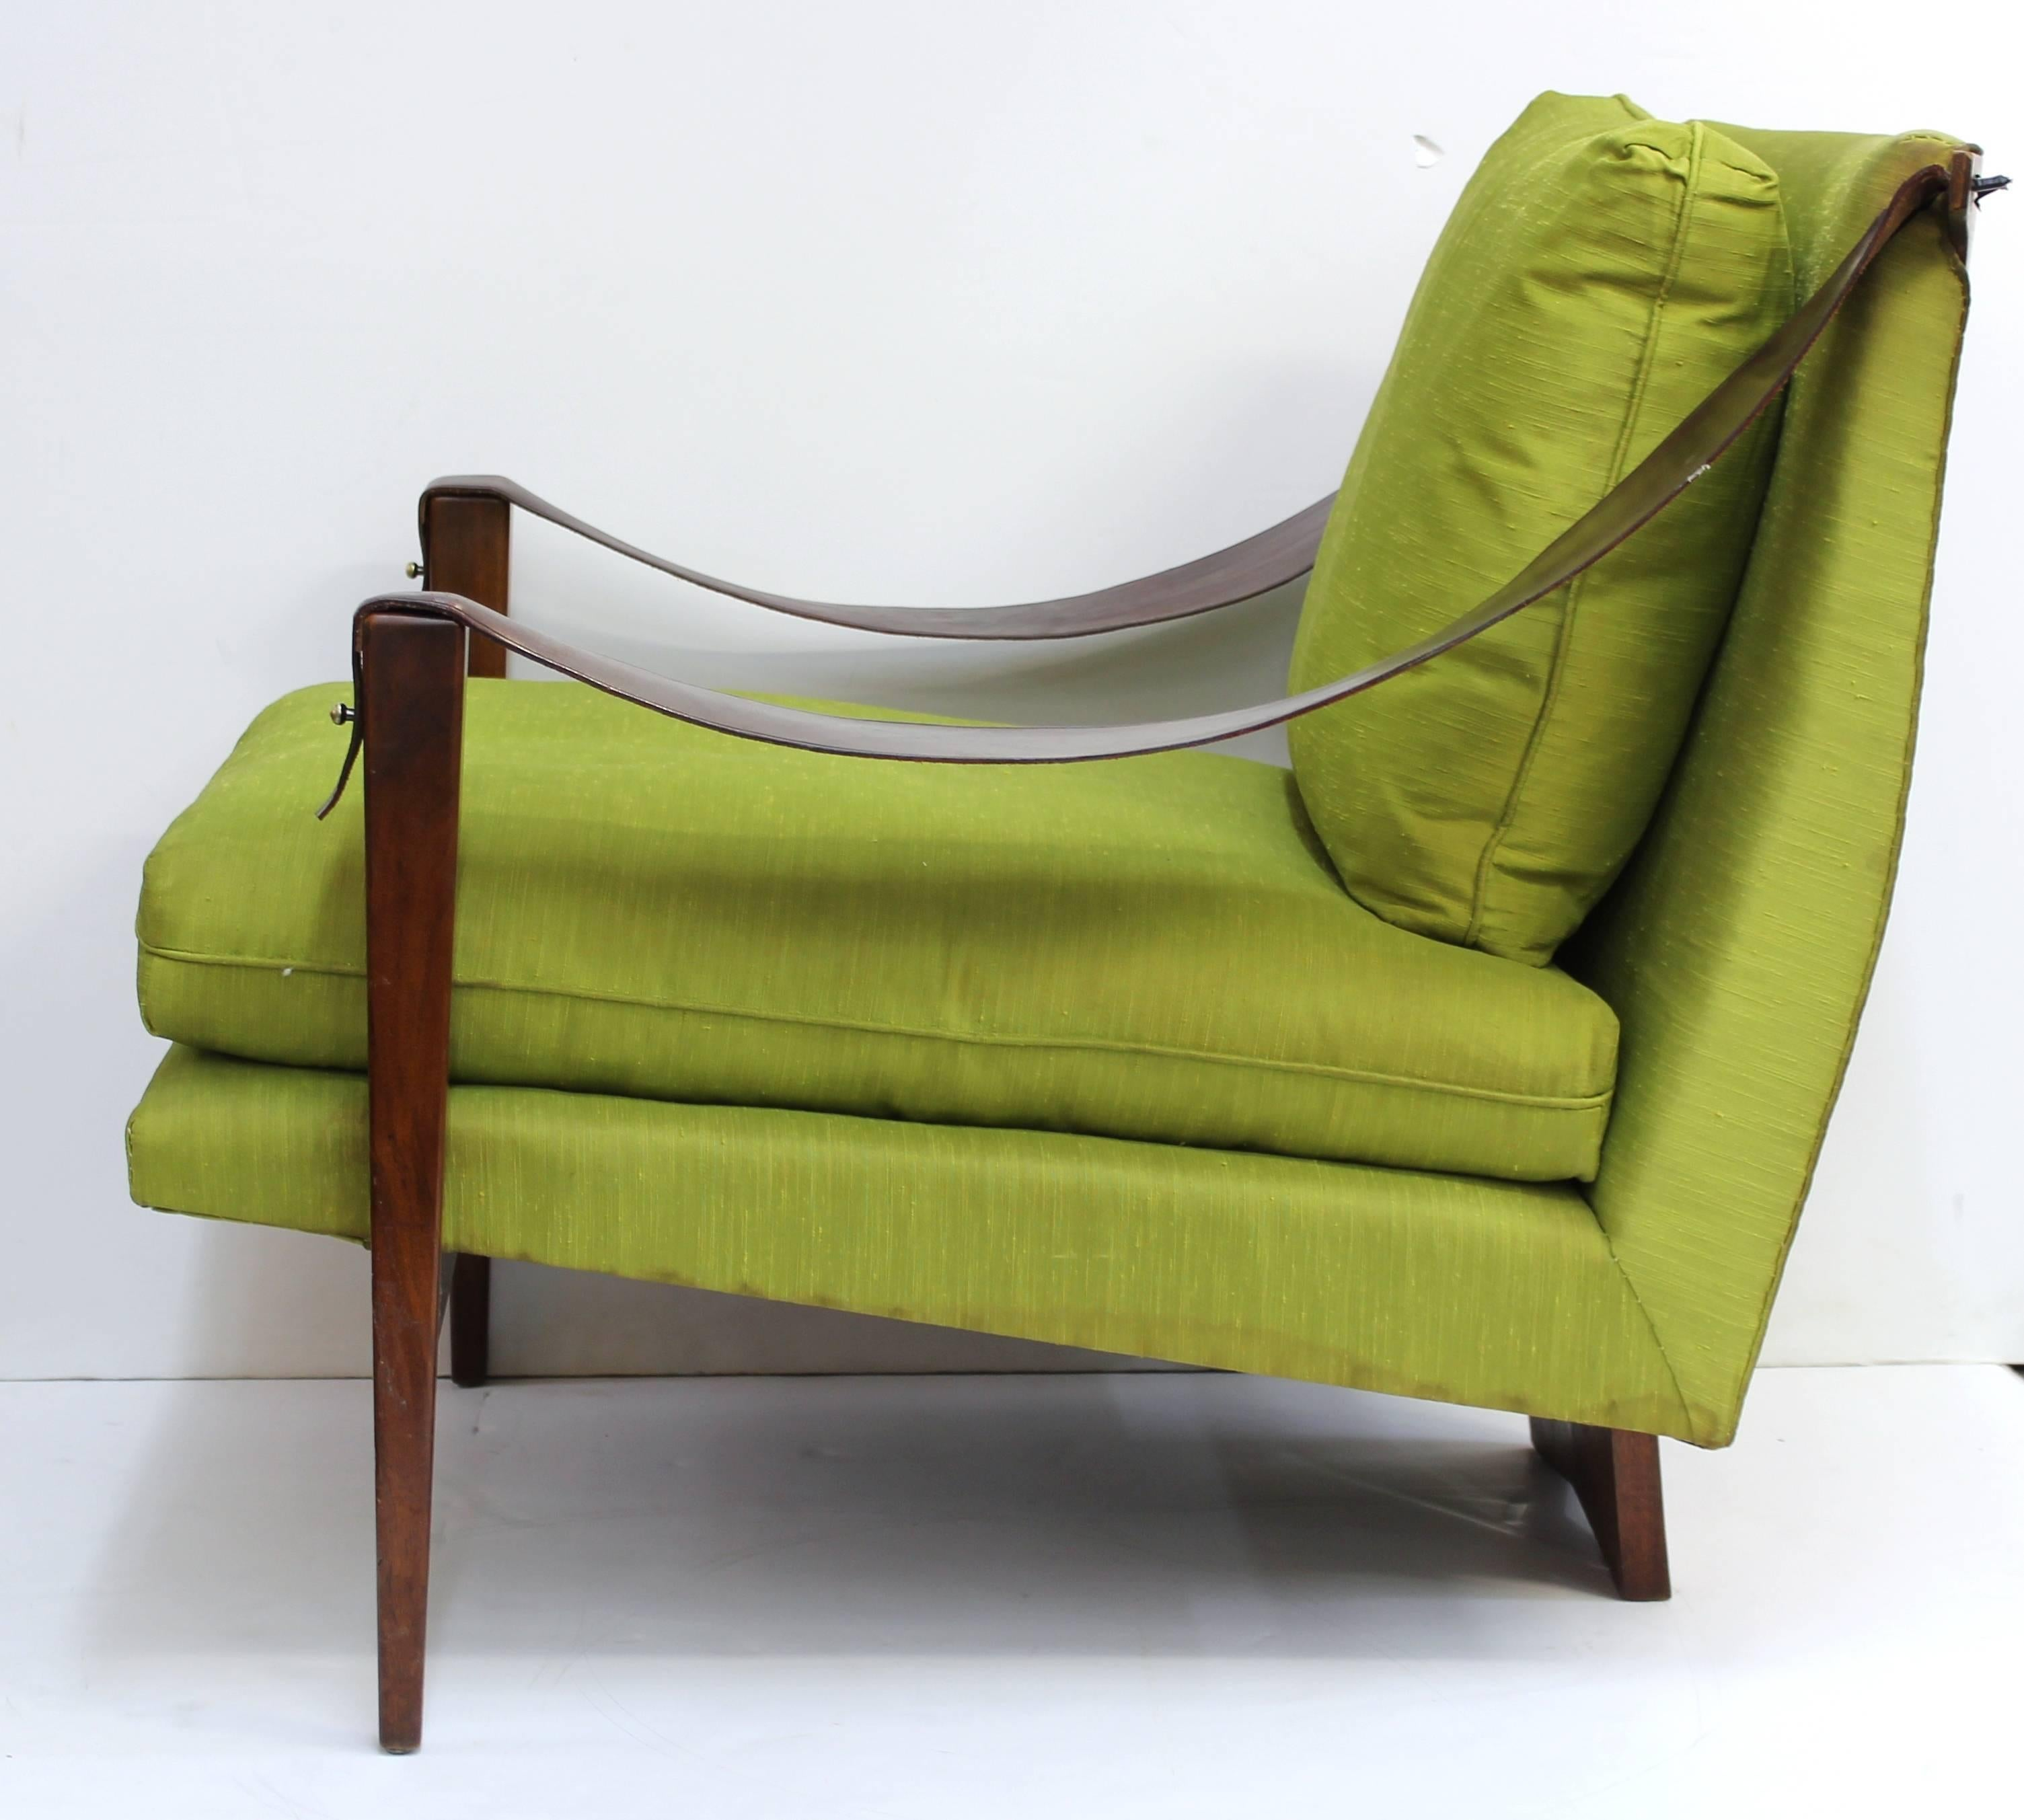 Enfield Chairs With Leather Swing Arms And Chartreuse Green Upholstery In  Good Condition For Sale In